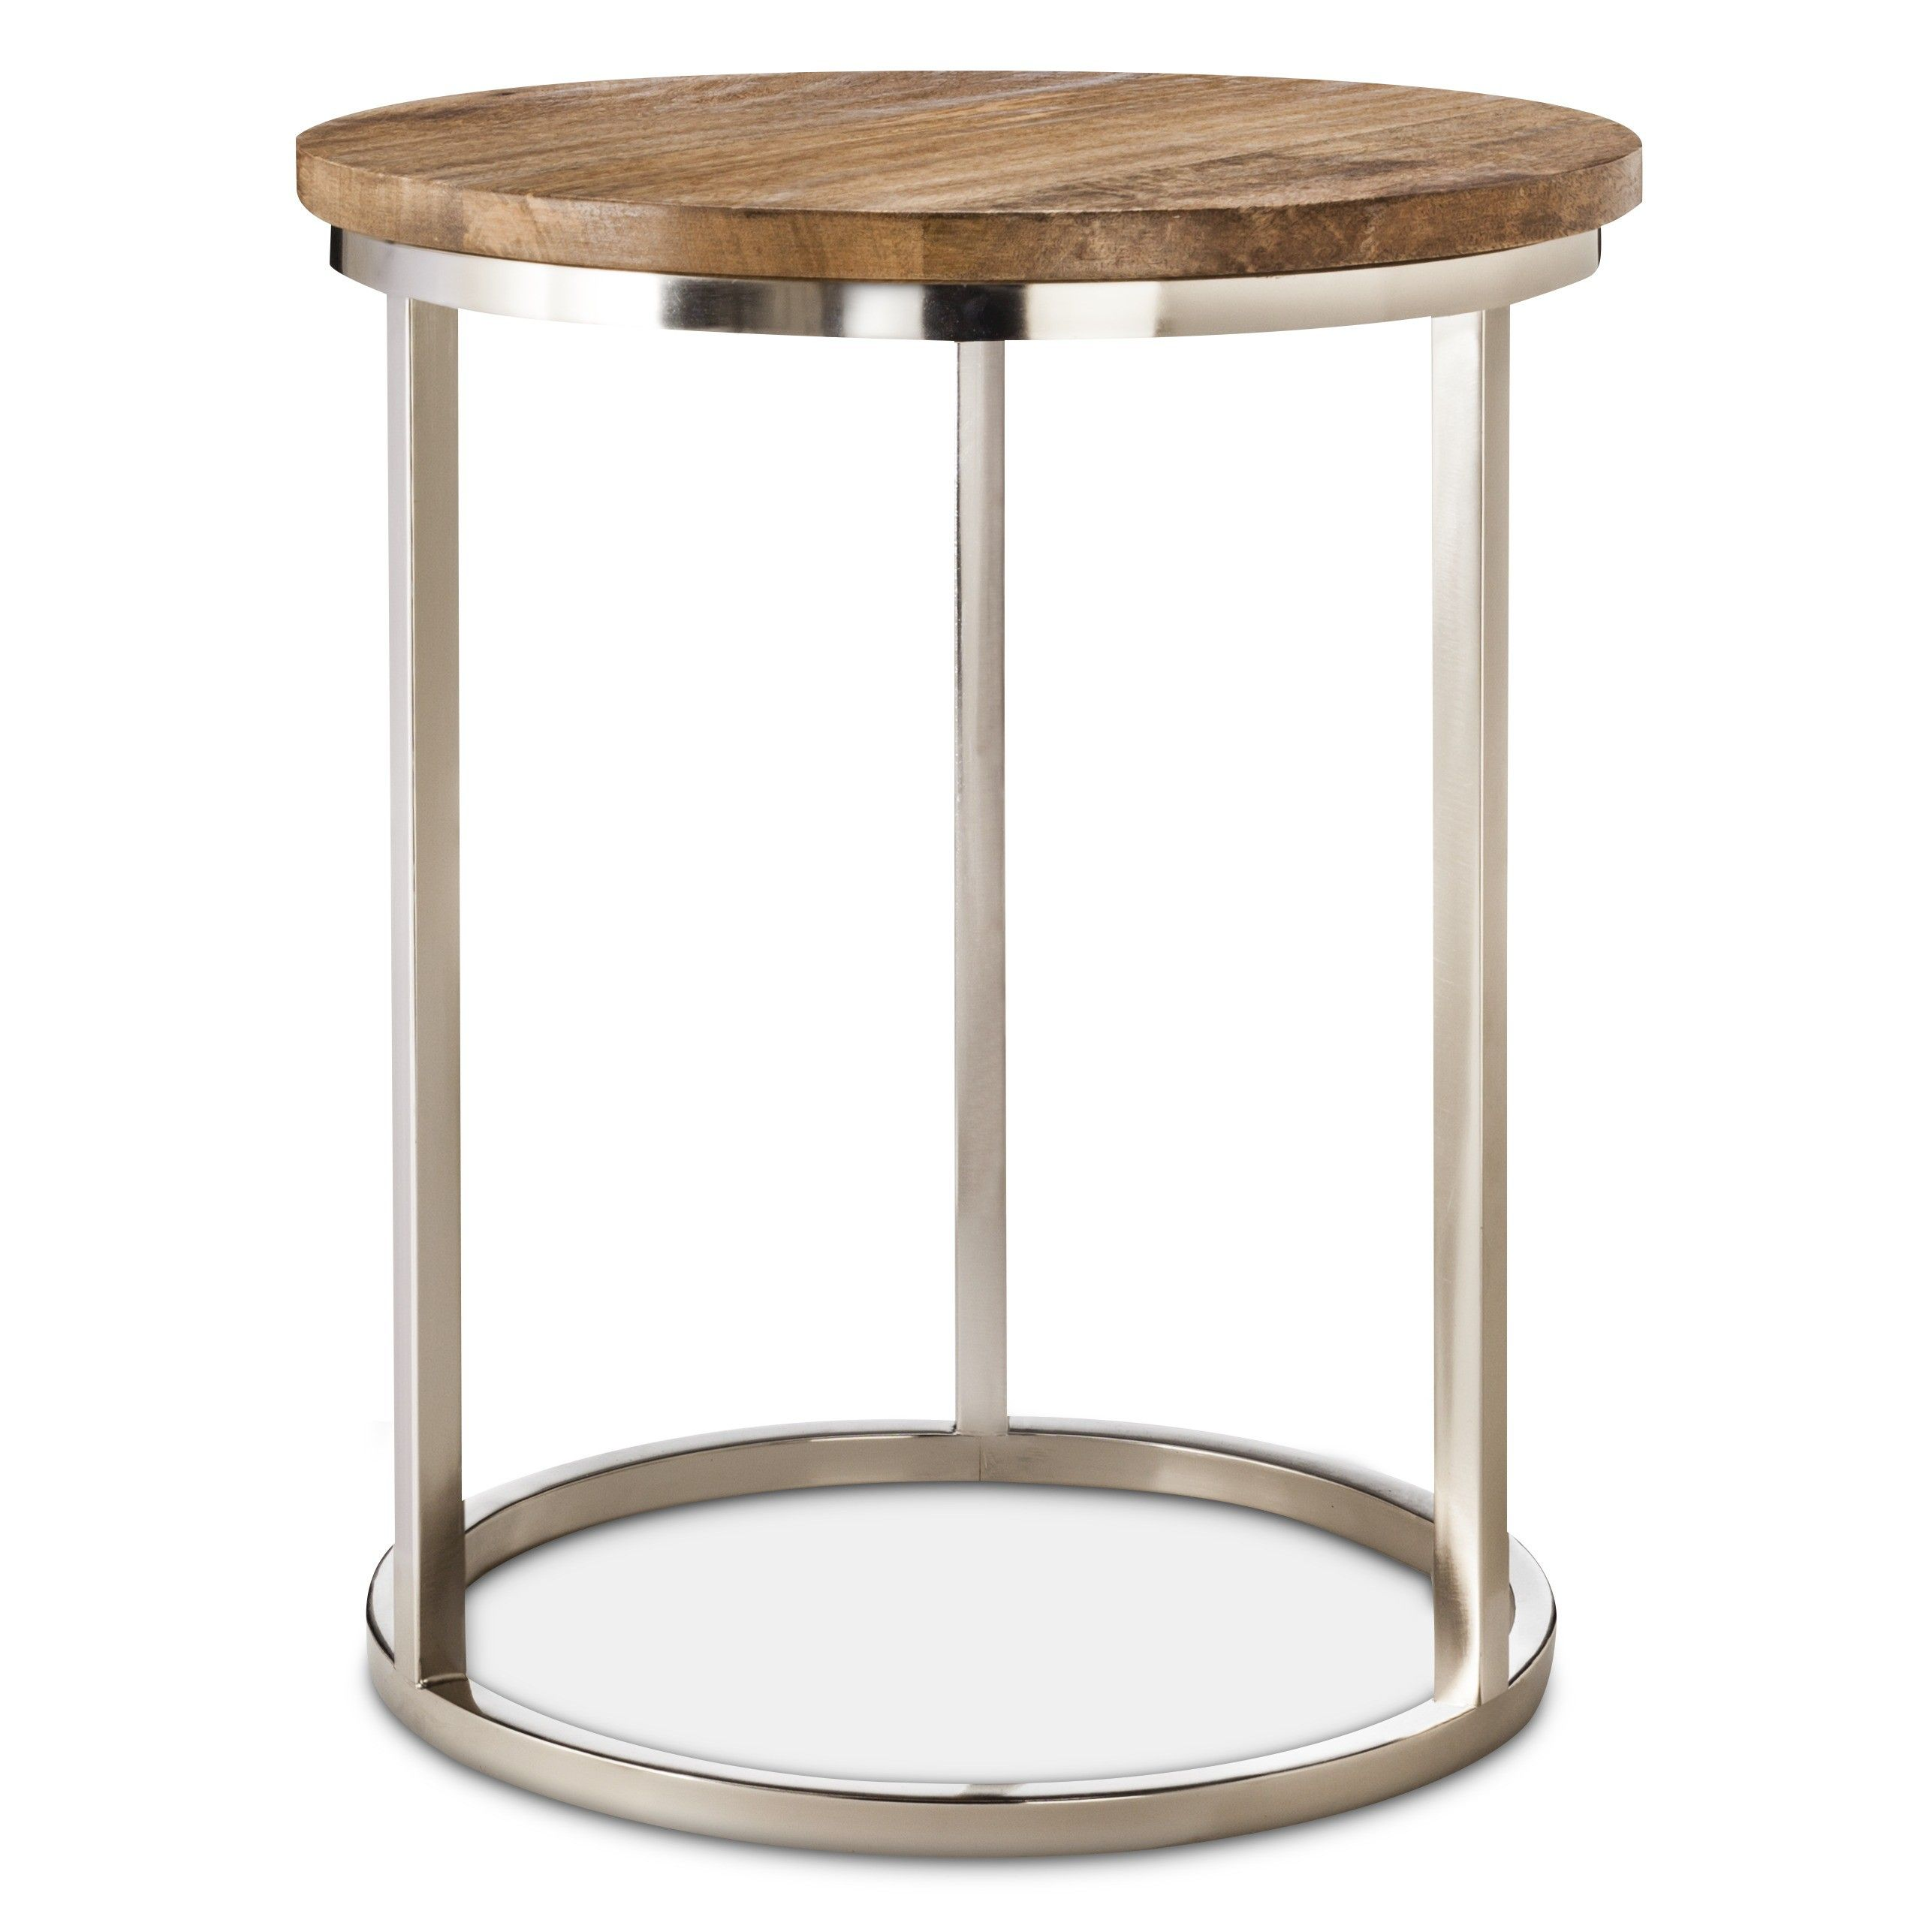 side table for glider threshold metal accent with wood top target small chair ott country style lamps patio furniture montreal cube tables spaces cordless reading clear perspex